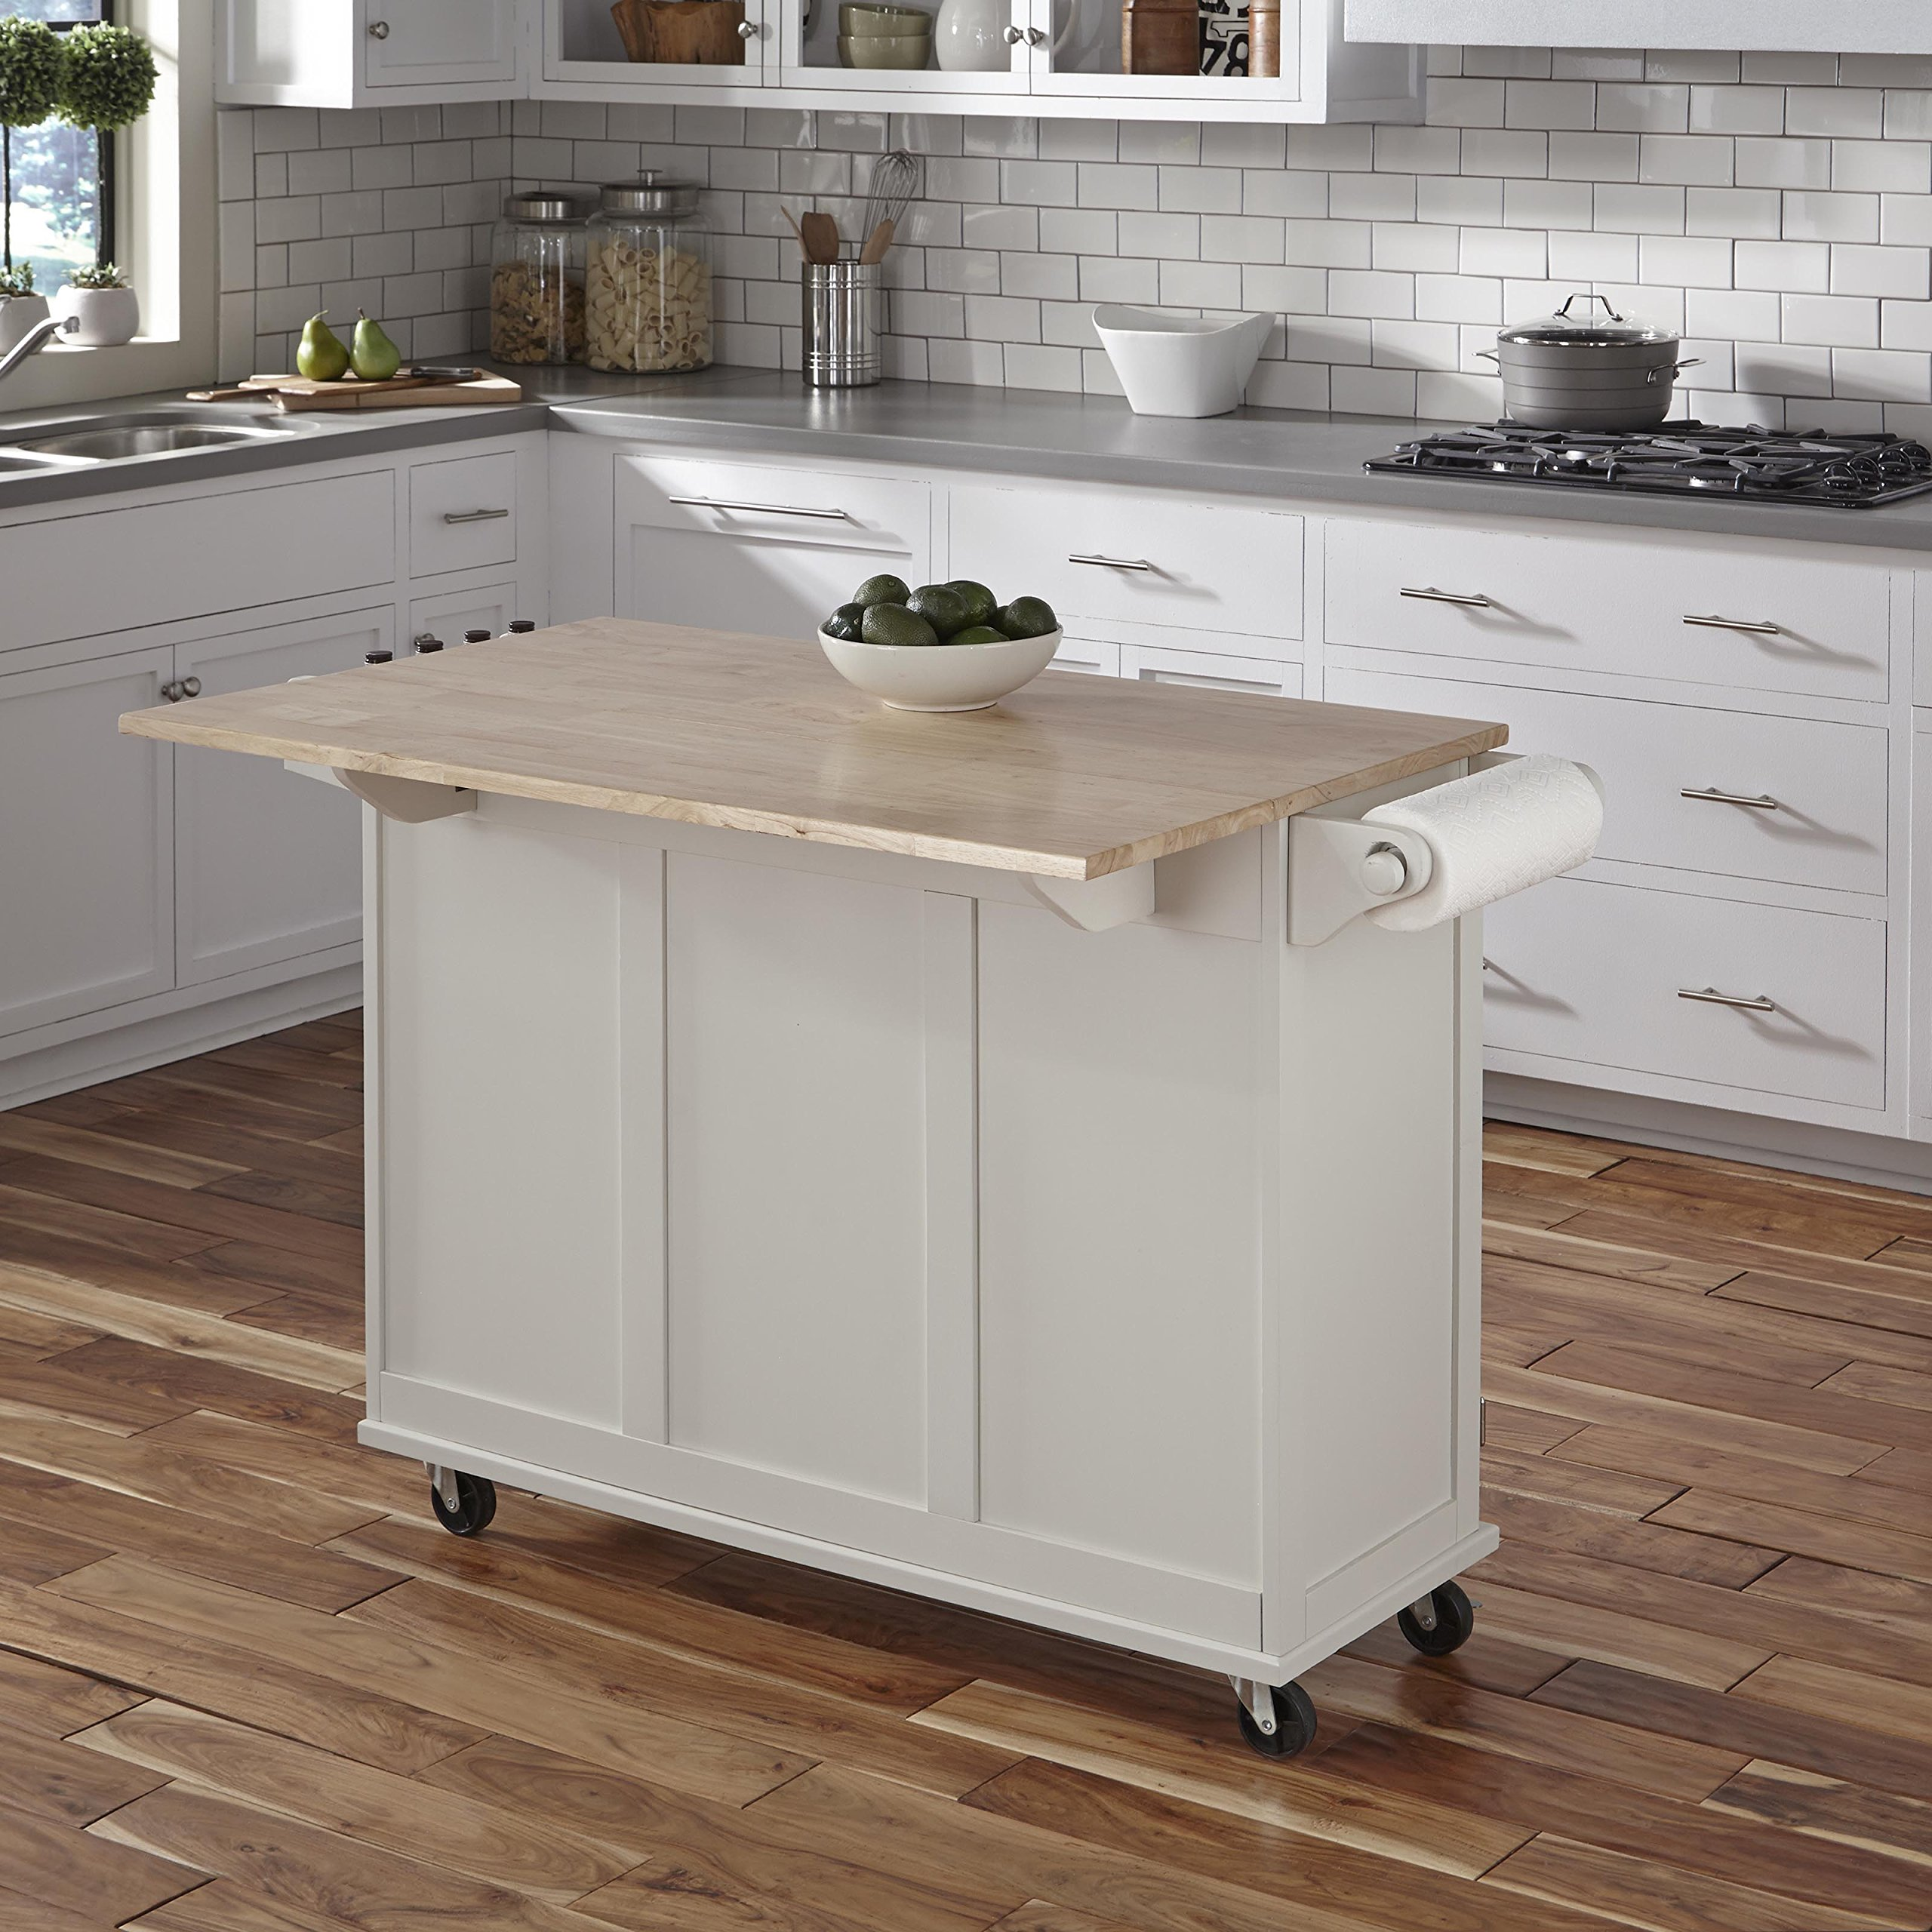 Home Styles 4511-95 Liberty Kitchen Cart with Wood Top, White by Home Styles (Image #7)